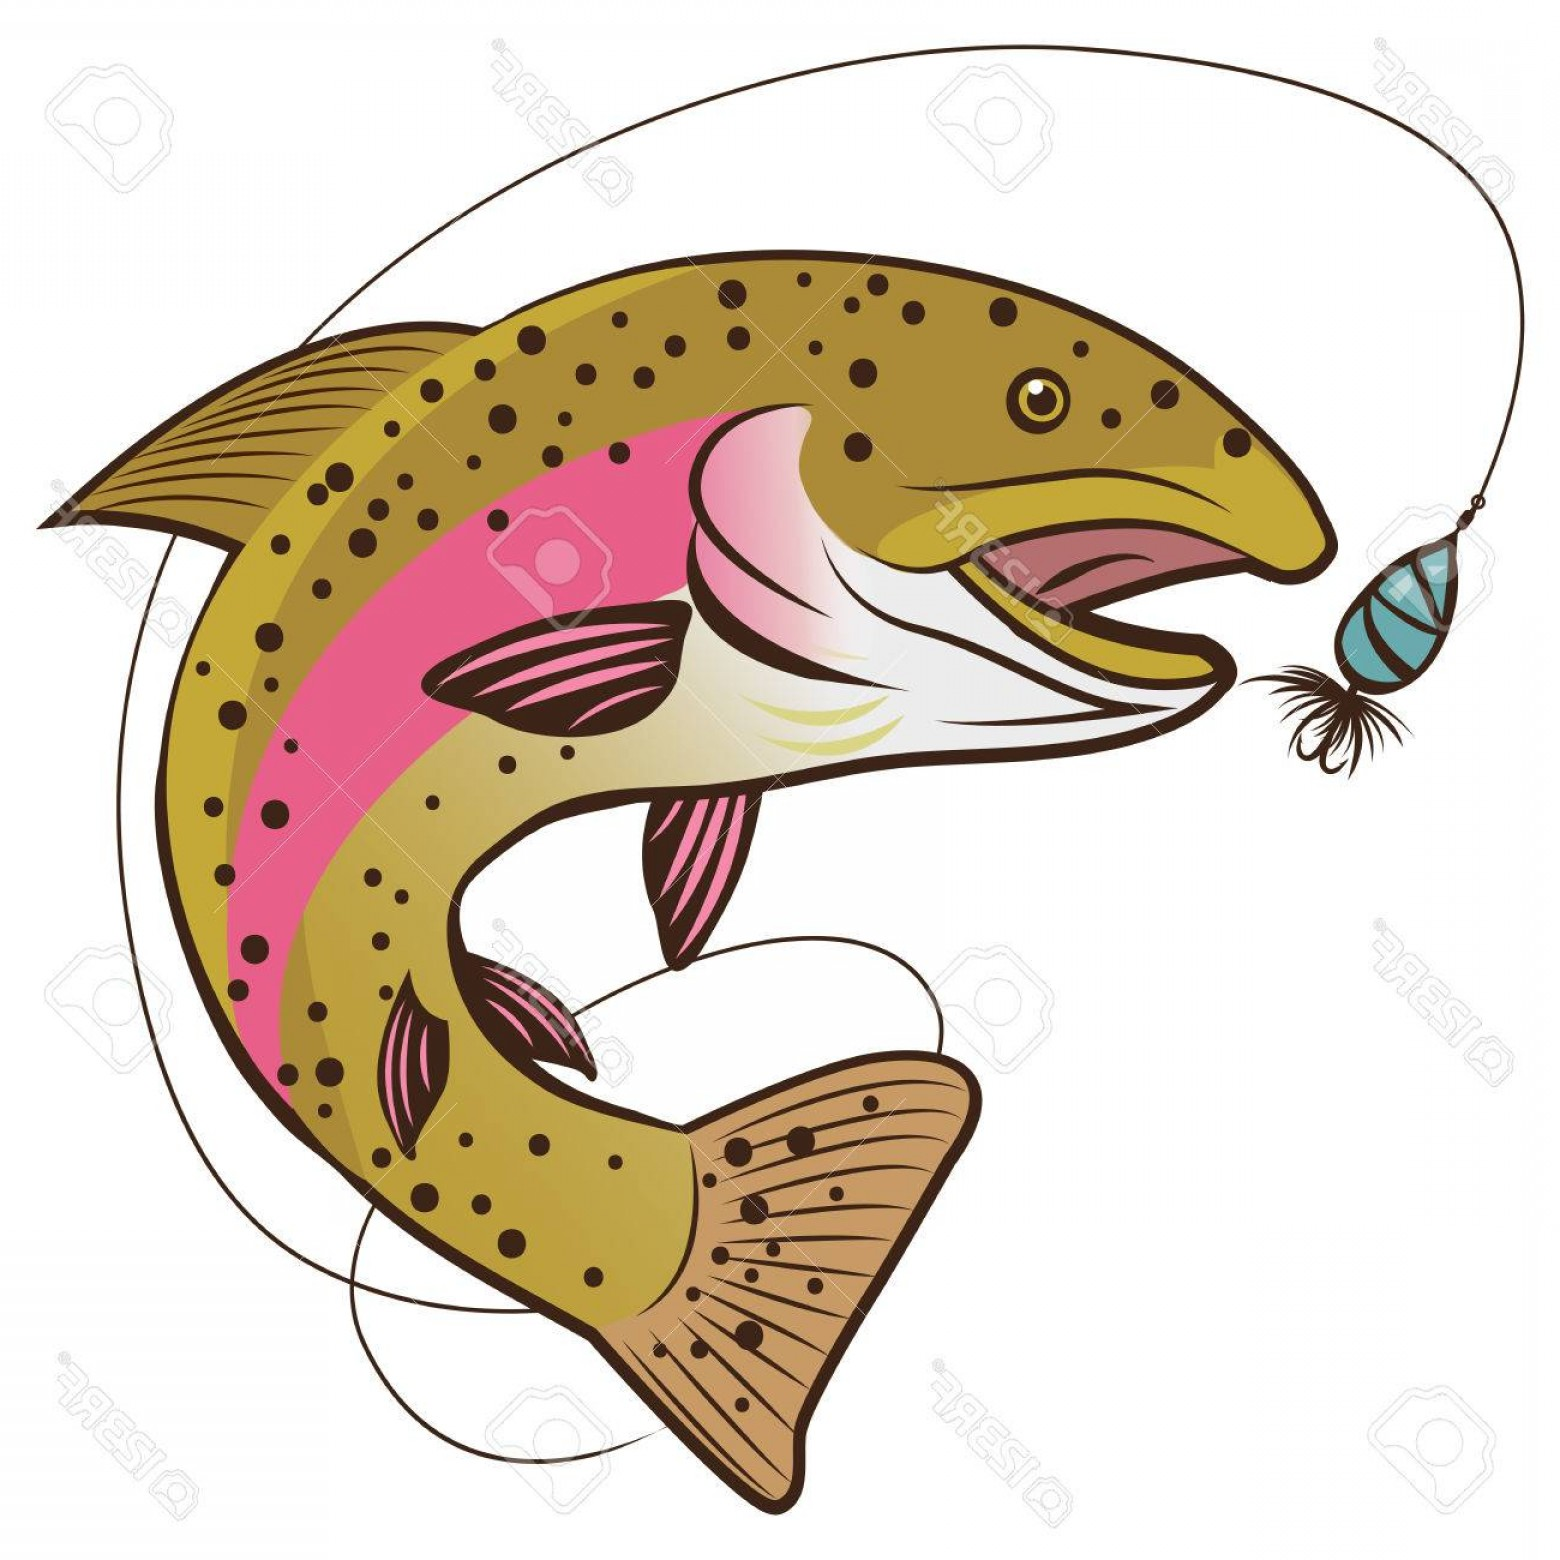 Speckled Trout Vector: Photostock Vector Rainbow Trout Vector Isolated On A White Background Fish Mascot Vector Illustration The Real Fishing